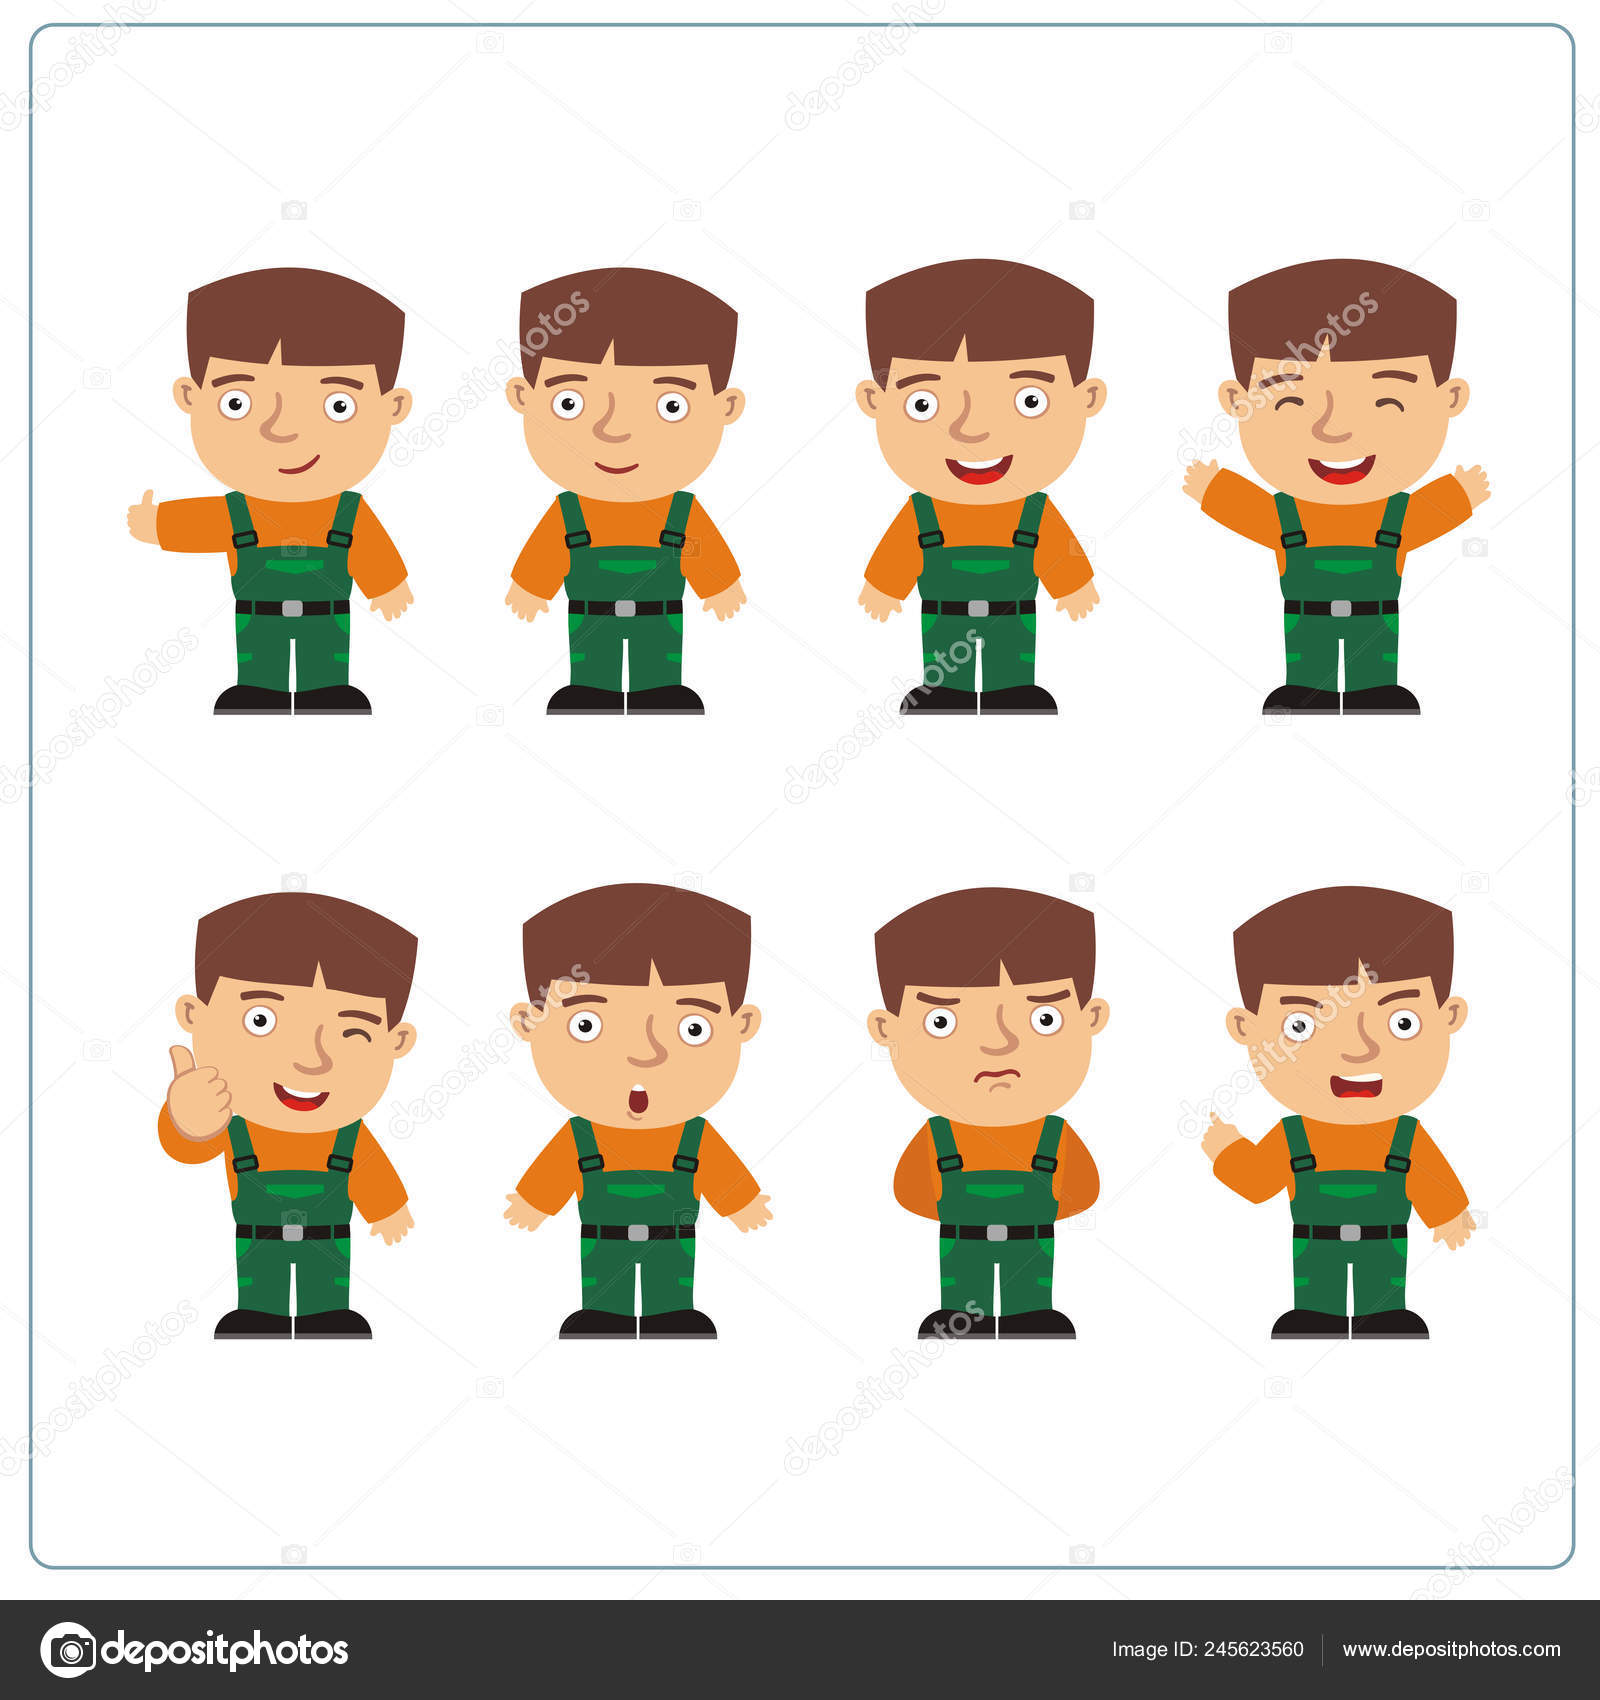 Funny Cartoon Images Of Boys cute funny cartoon character mechanic boys wearing overalls